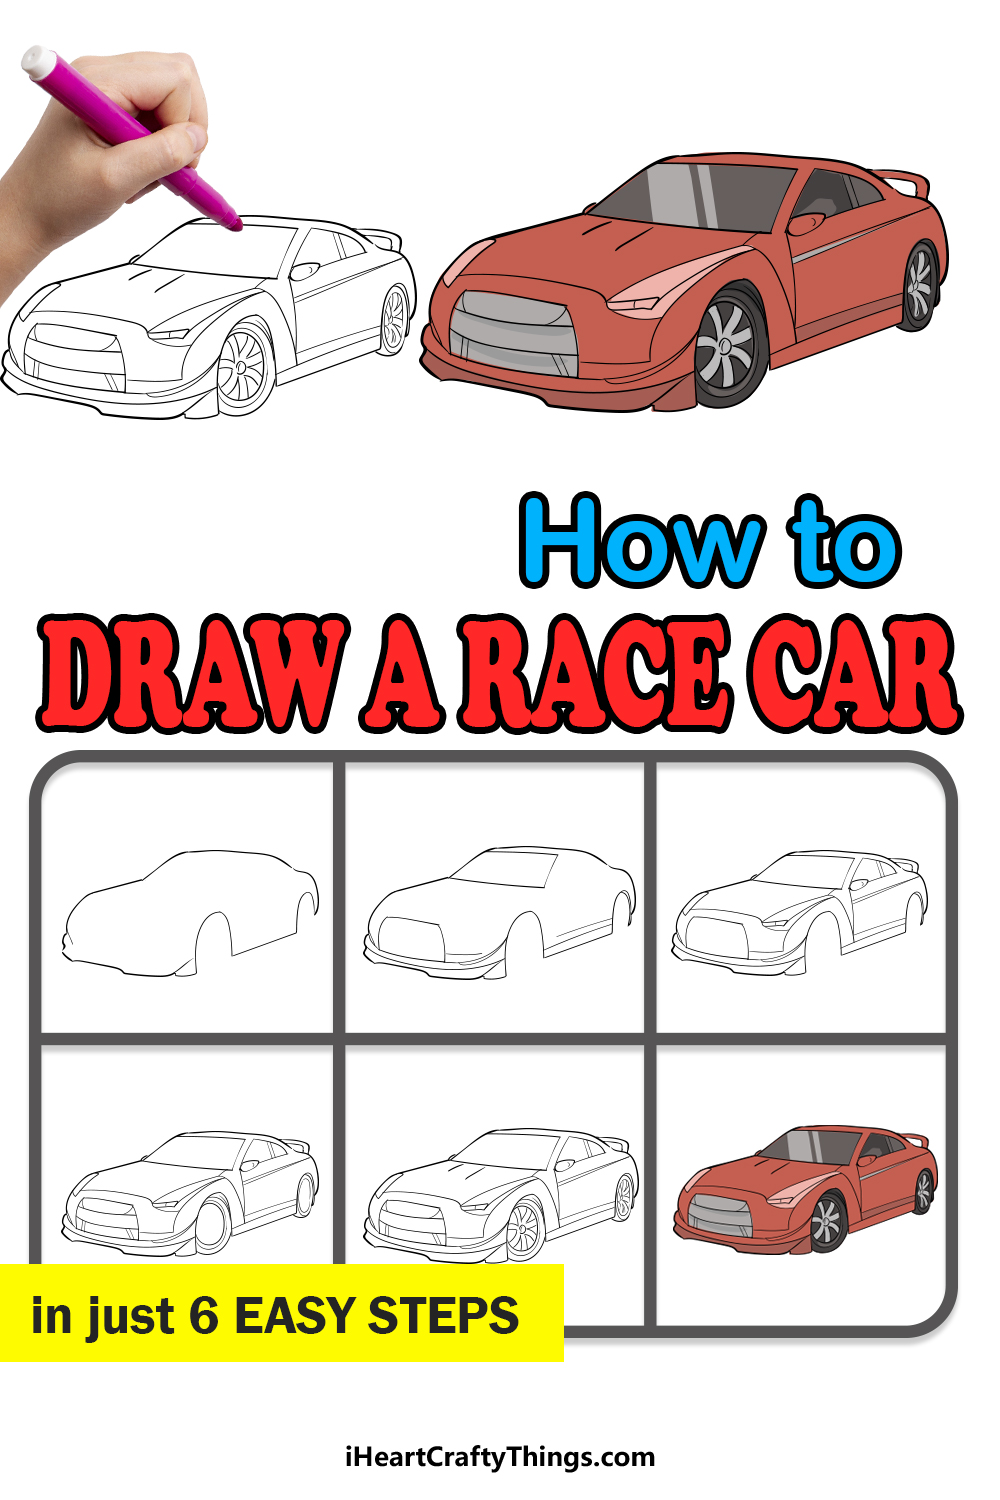 how to draw a race car in 6 easy steps